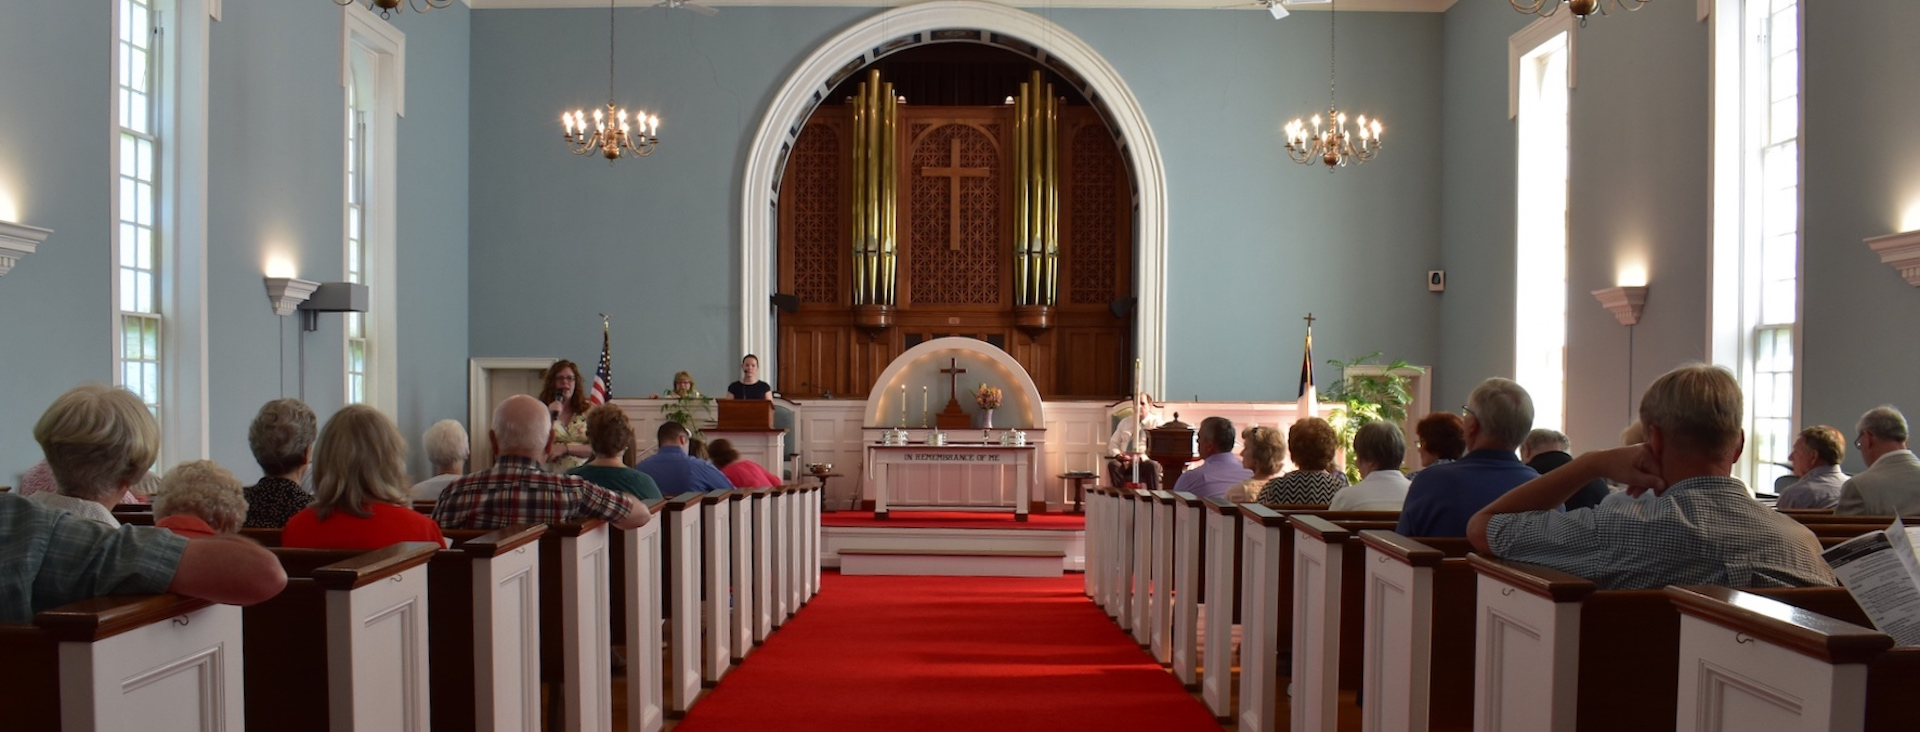 1529349656_First Congregational Church - Interior Banner 1 Final.jpg